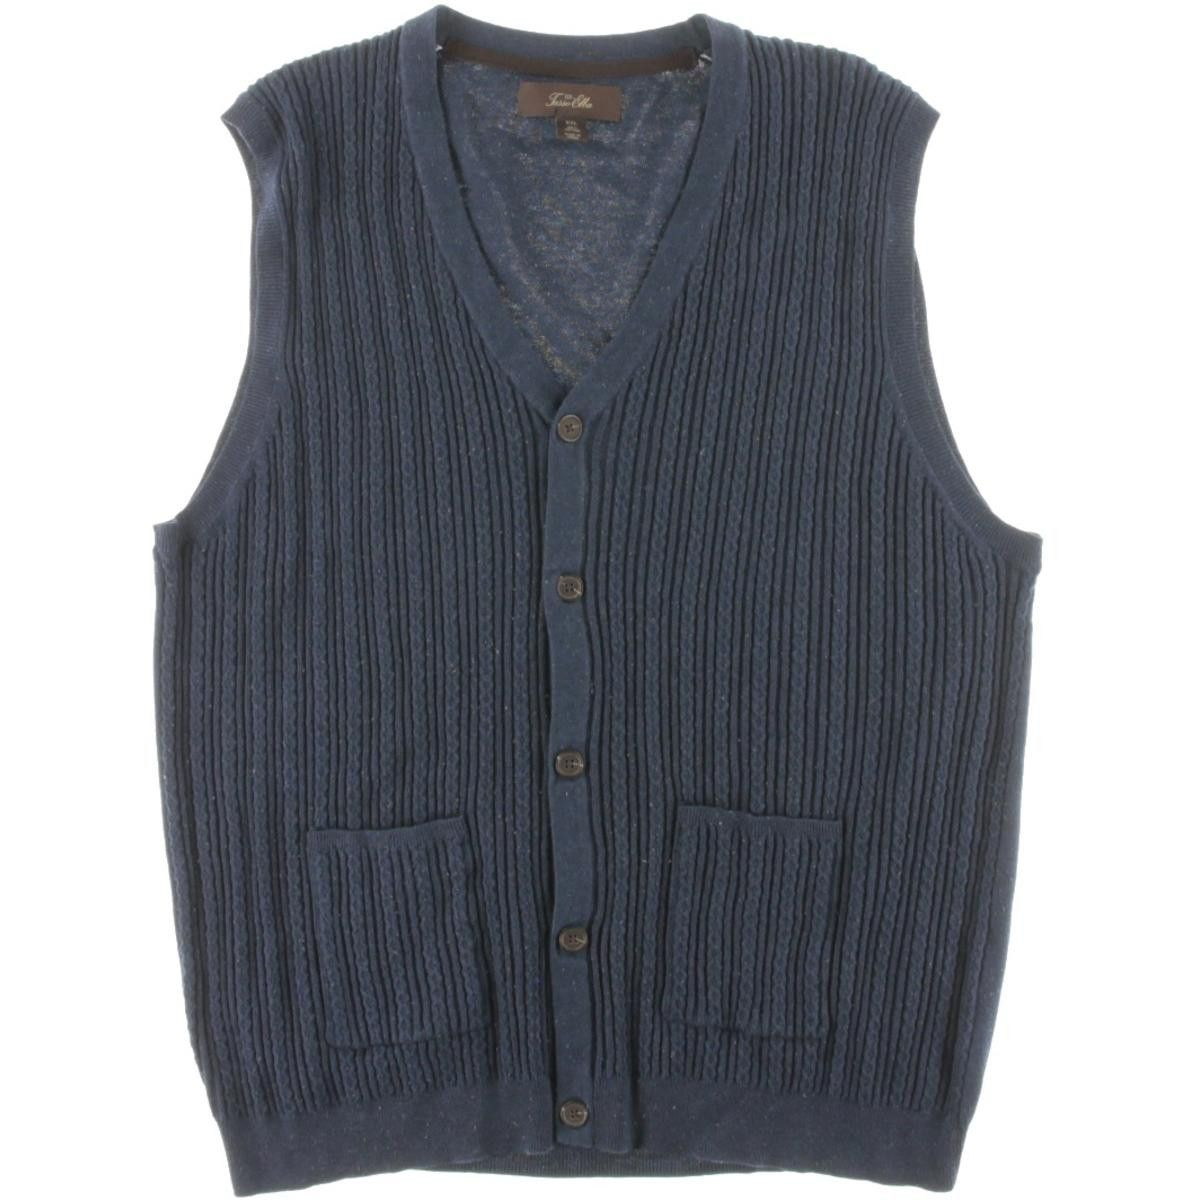 Tasso Elba Mens Cable Knit Button-Down Sweater Vest | Sweater ...